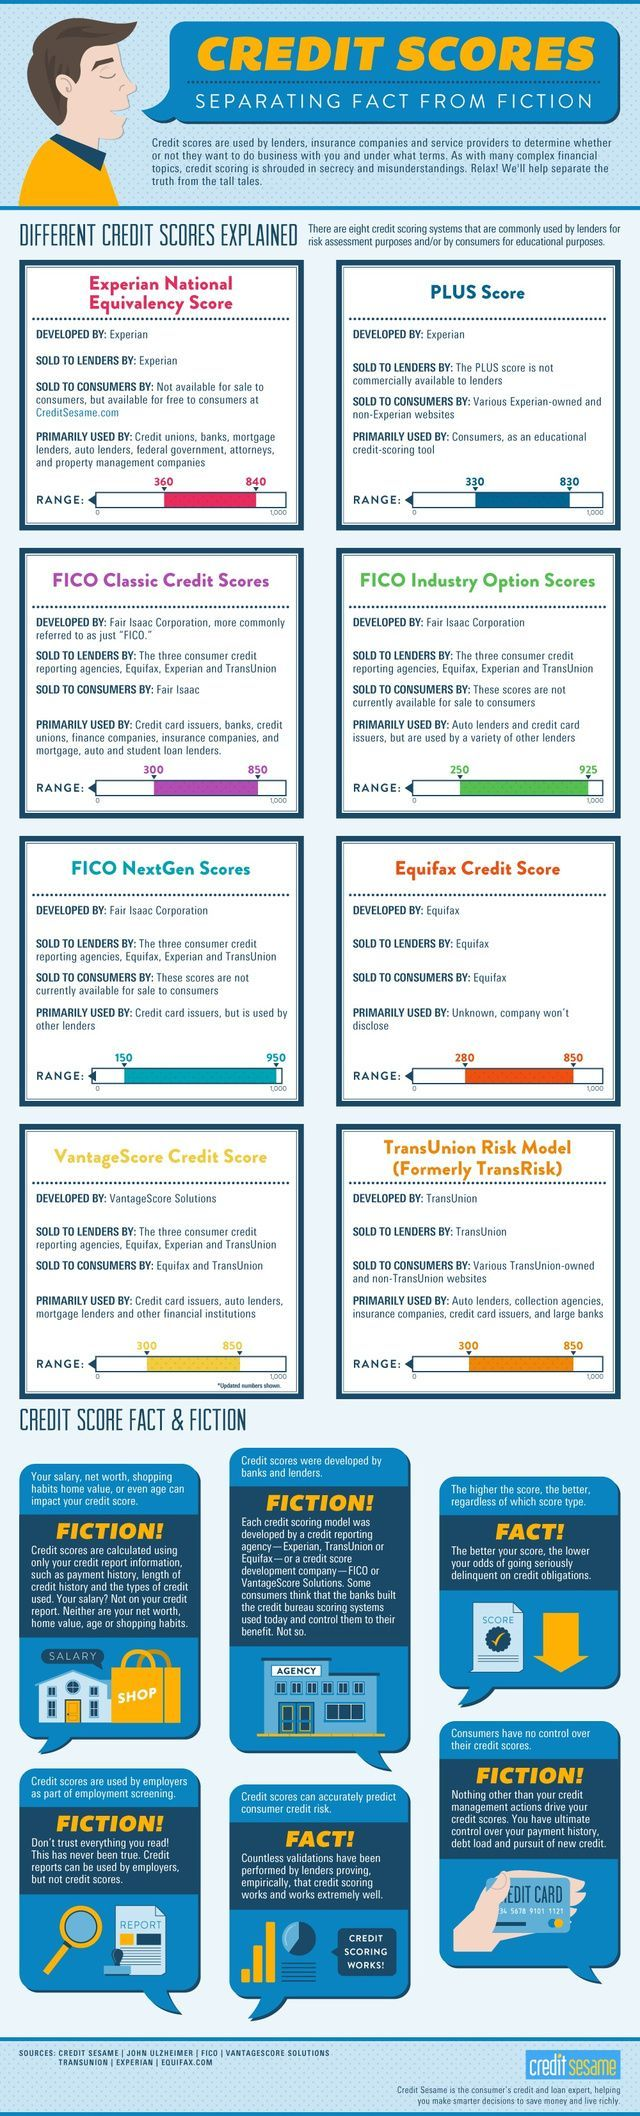 This Infographic Separates Credit Score Fact from Fiction!!!! Credit Scores, #CreditScores